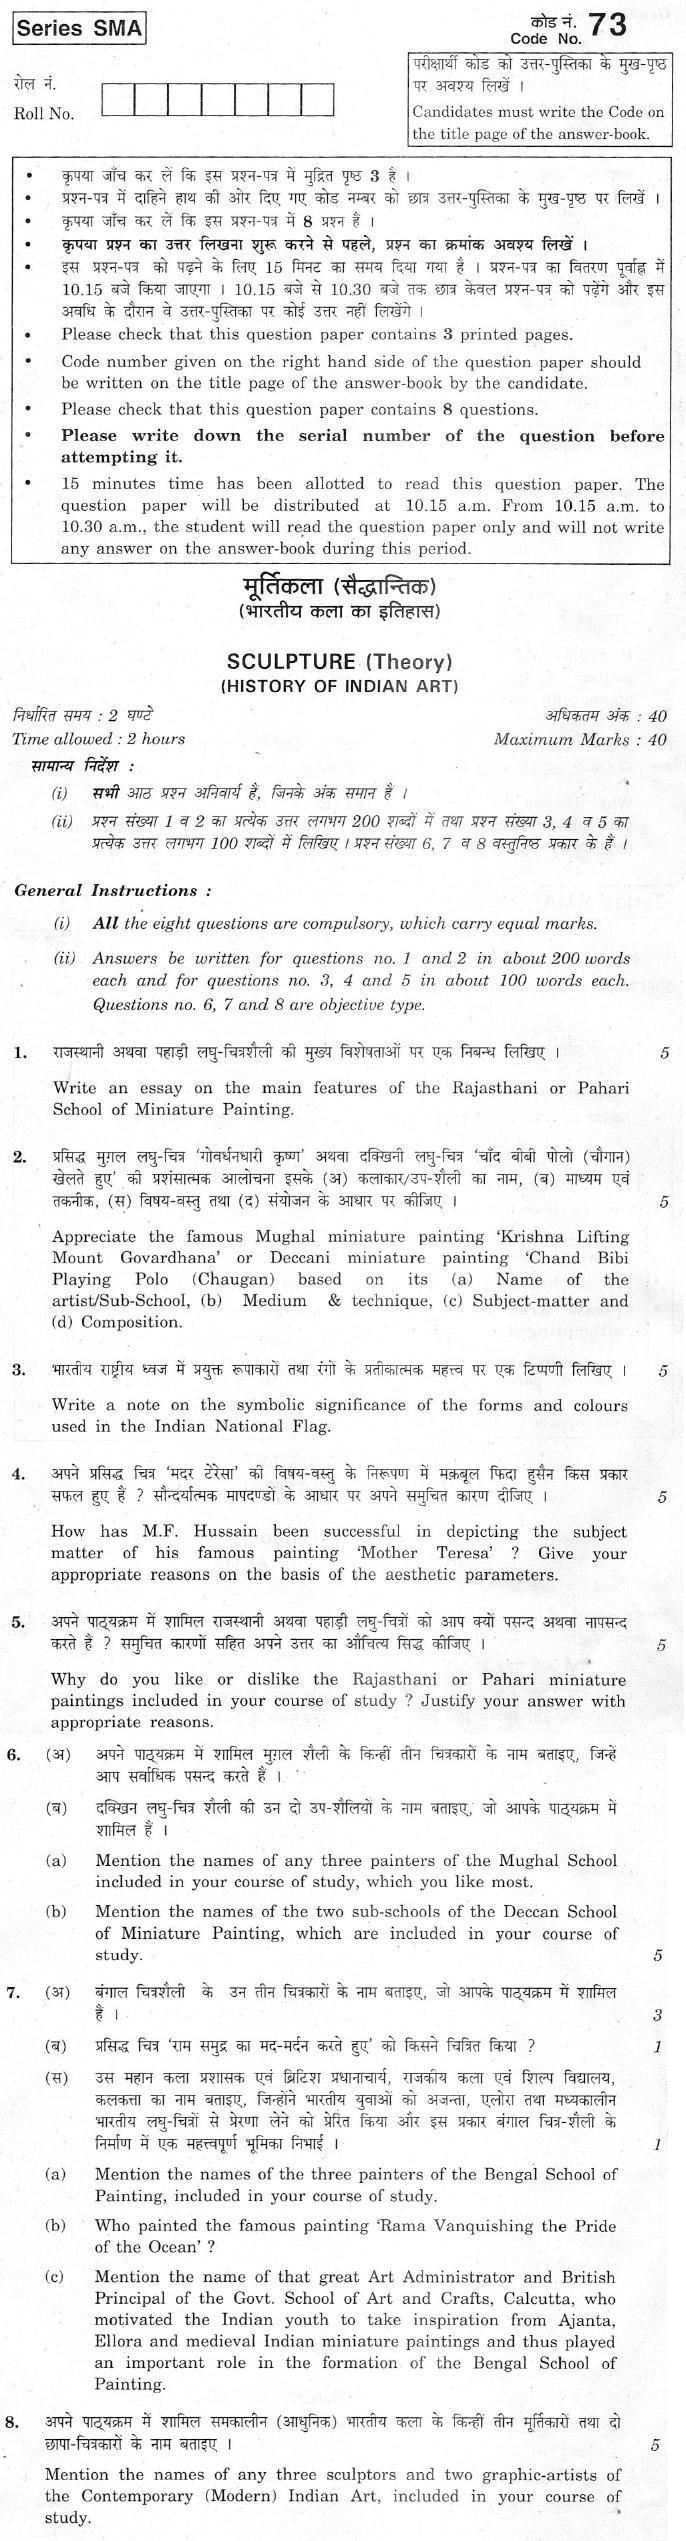 CBSE Class XII Previous Year Question Paper 2012 Sculpture (History of indian art)